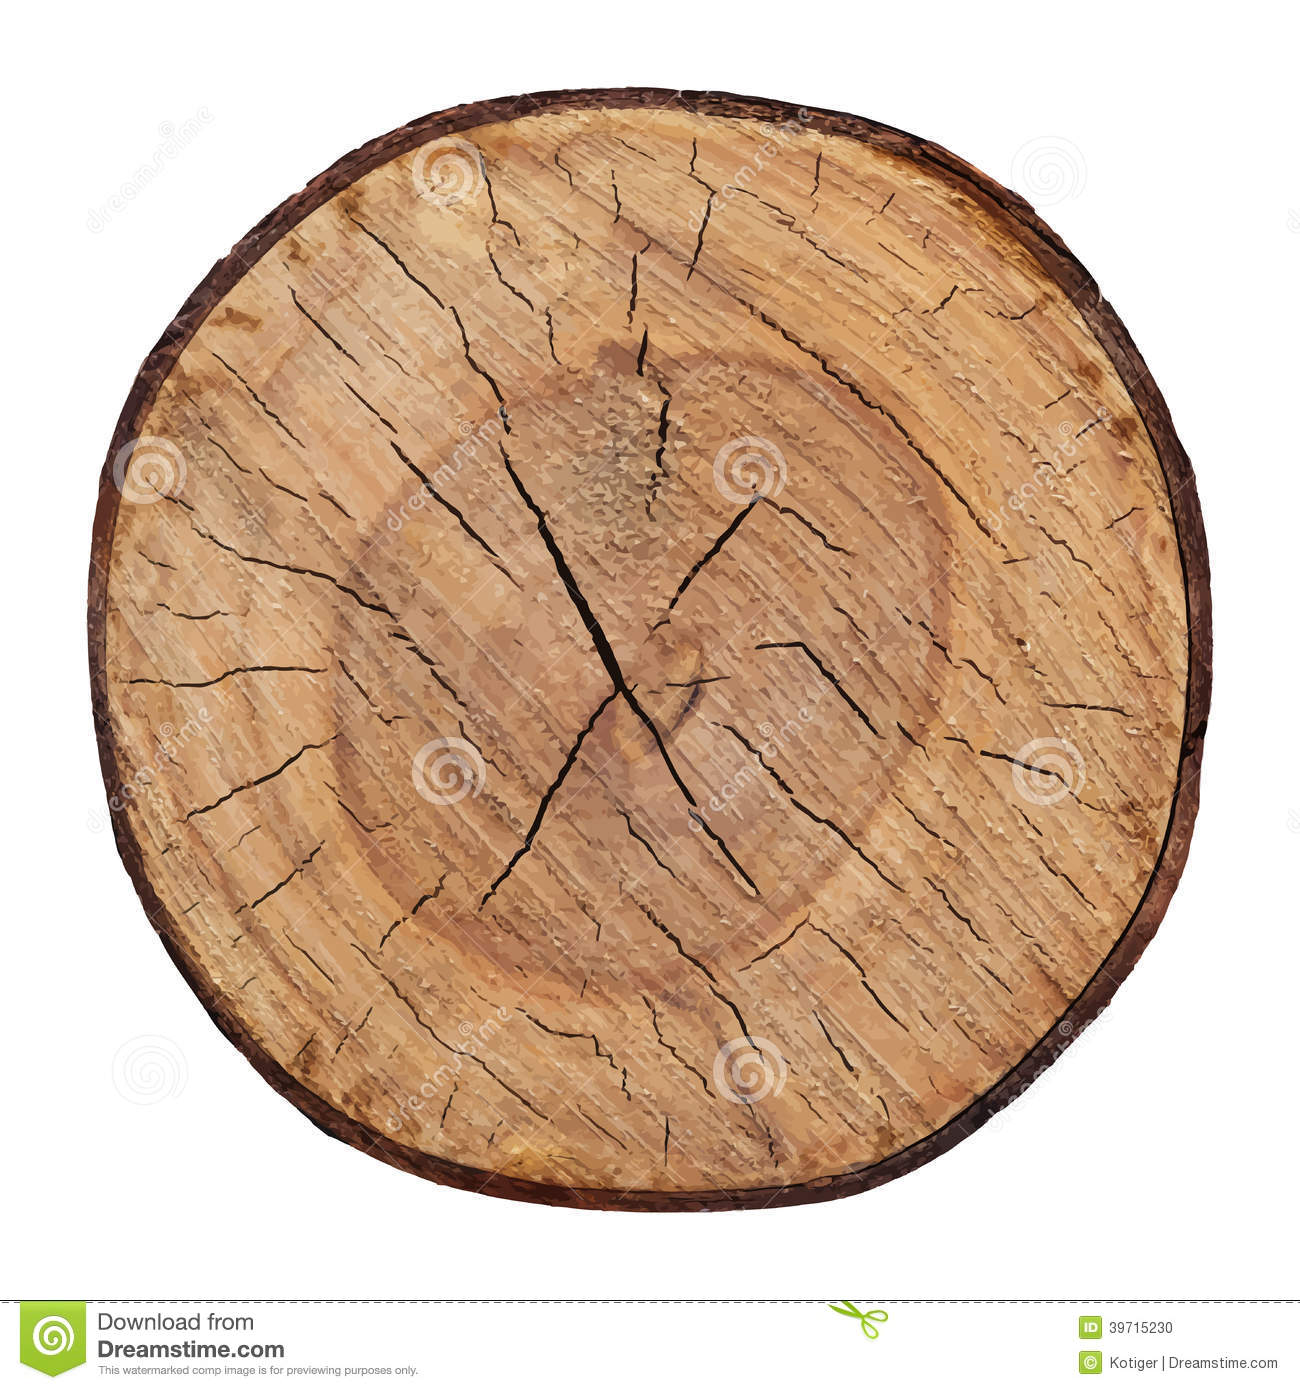 wood texture of cutted tree trunk vector stock illustration